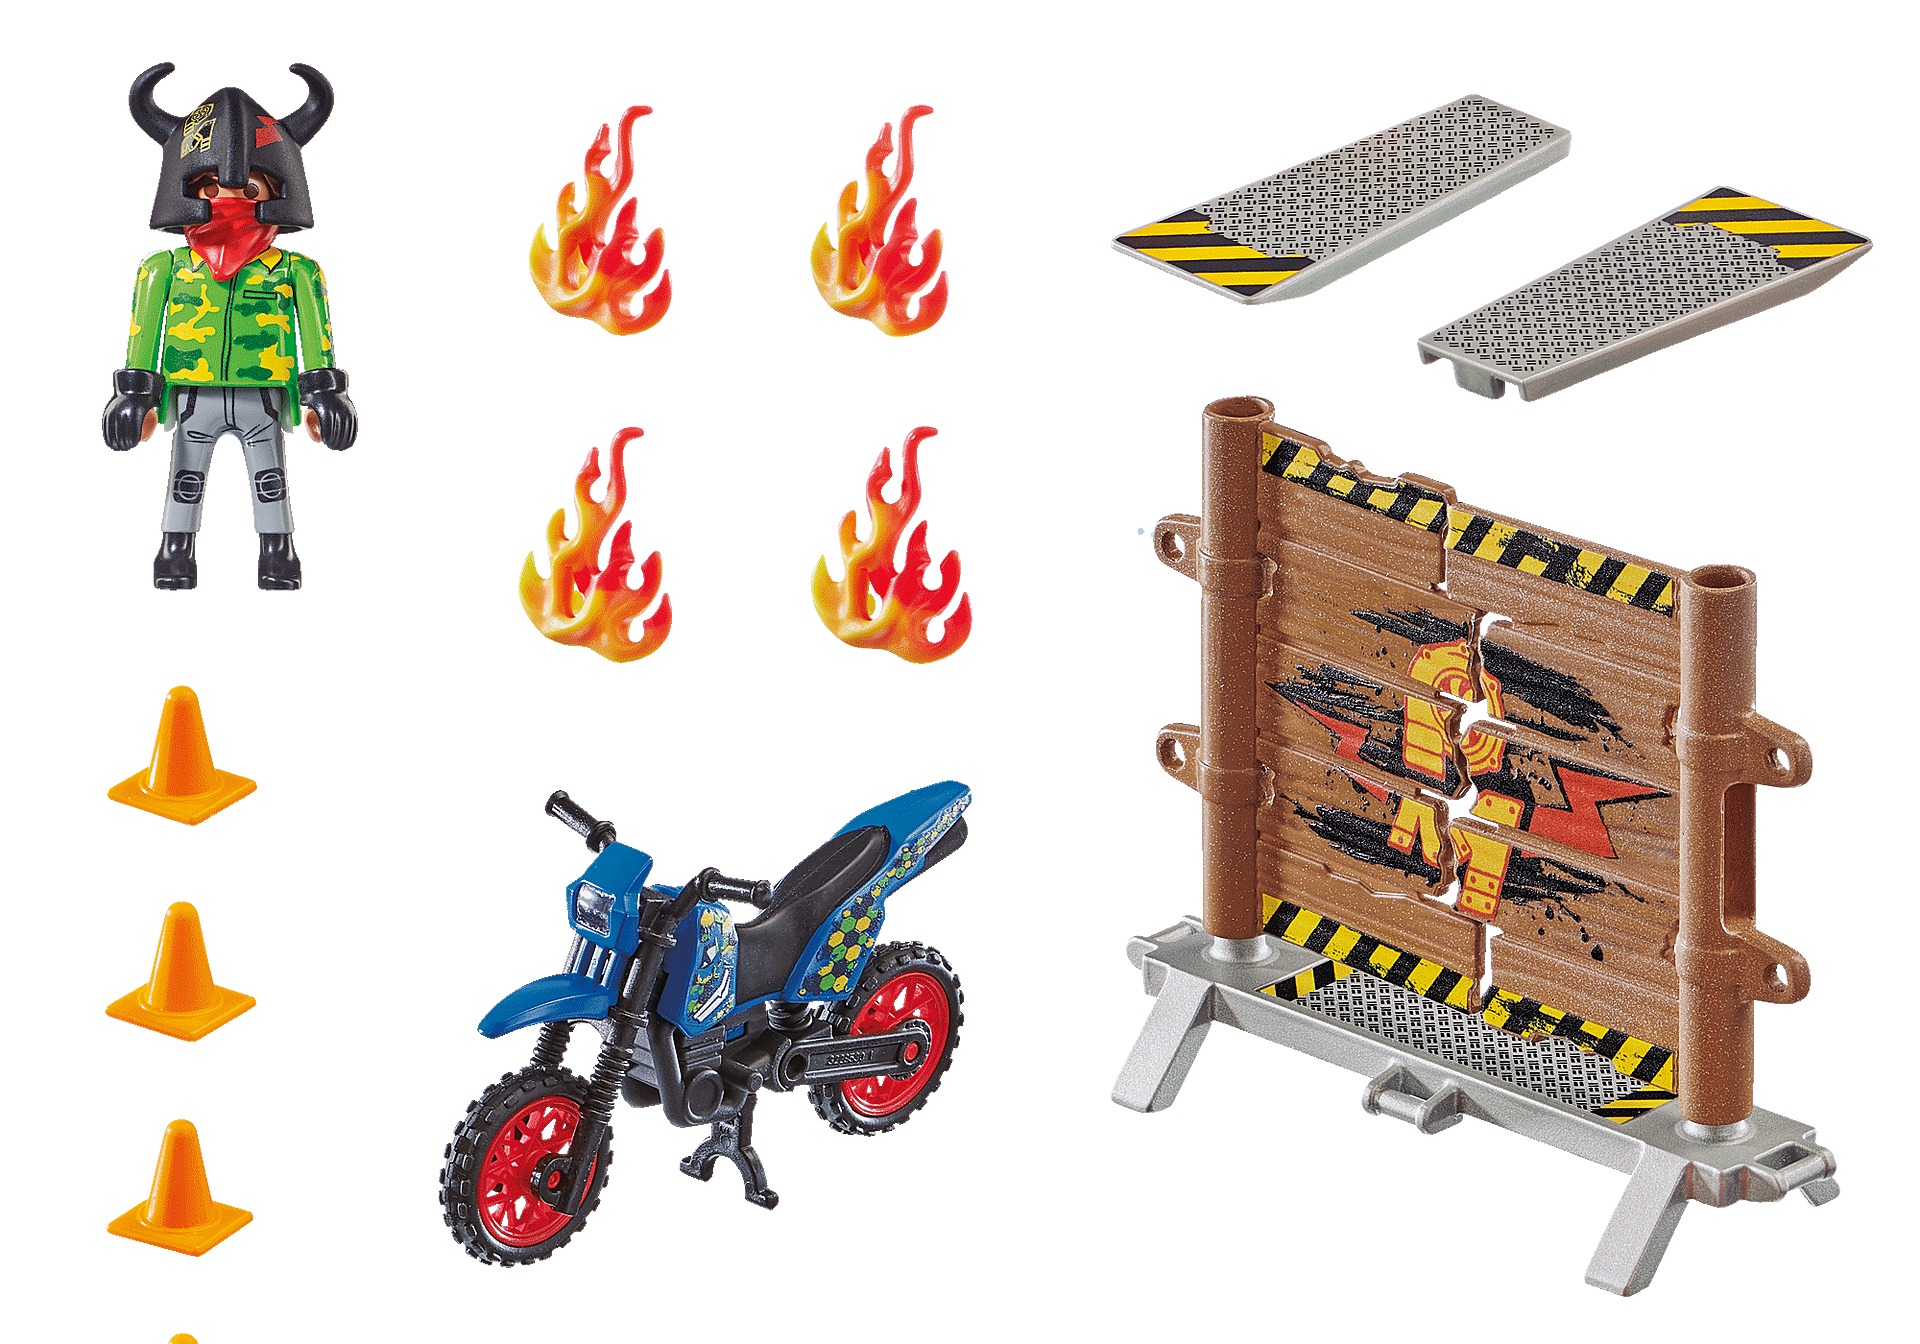 70553 Stunt Show Motocross with Fiery Wall zoom image3